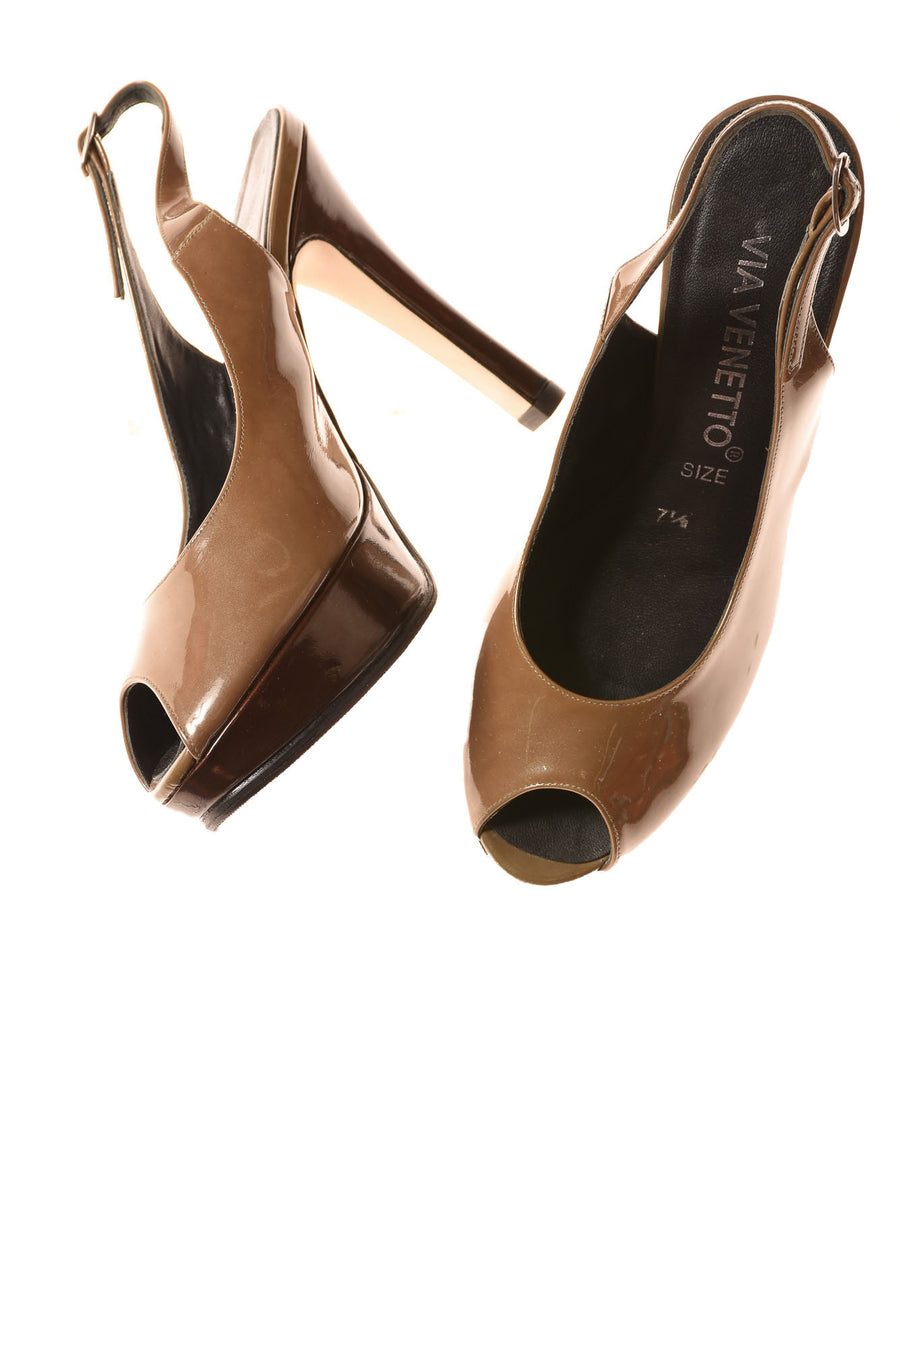 Women's Shoes By Via Venetto